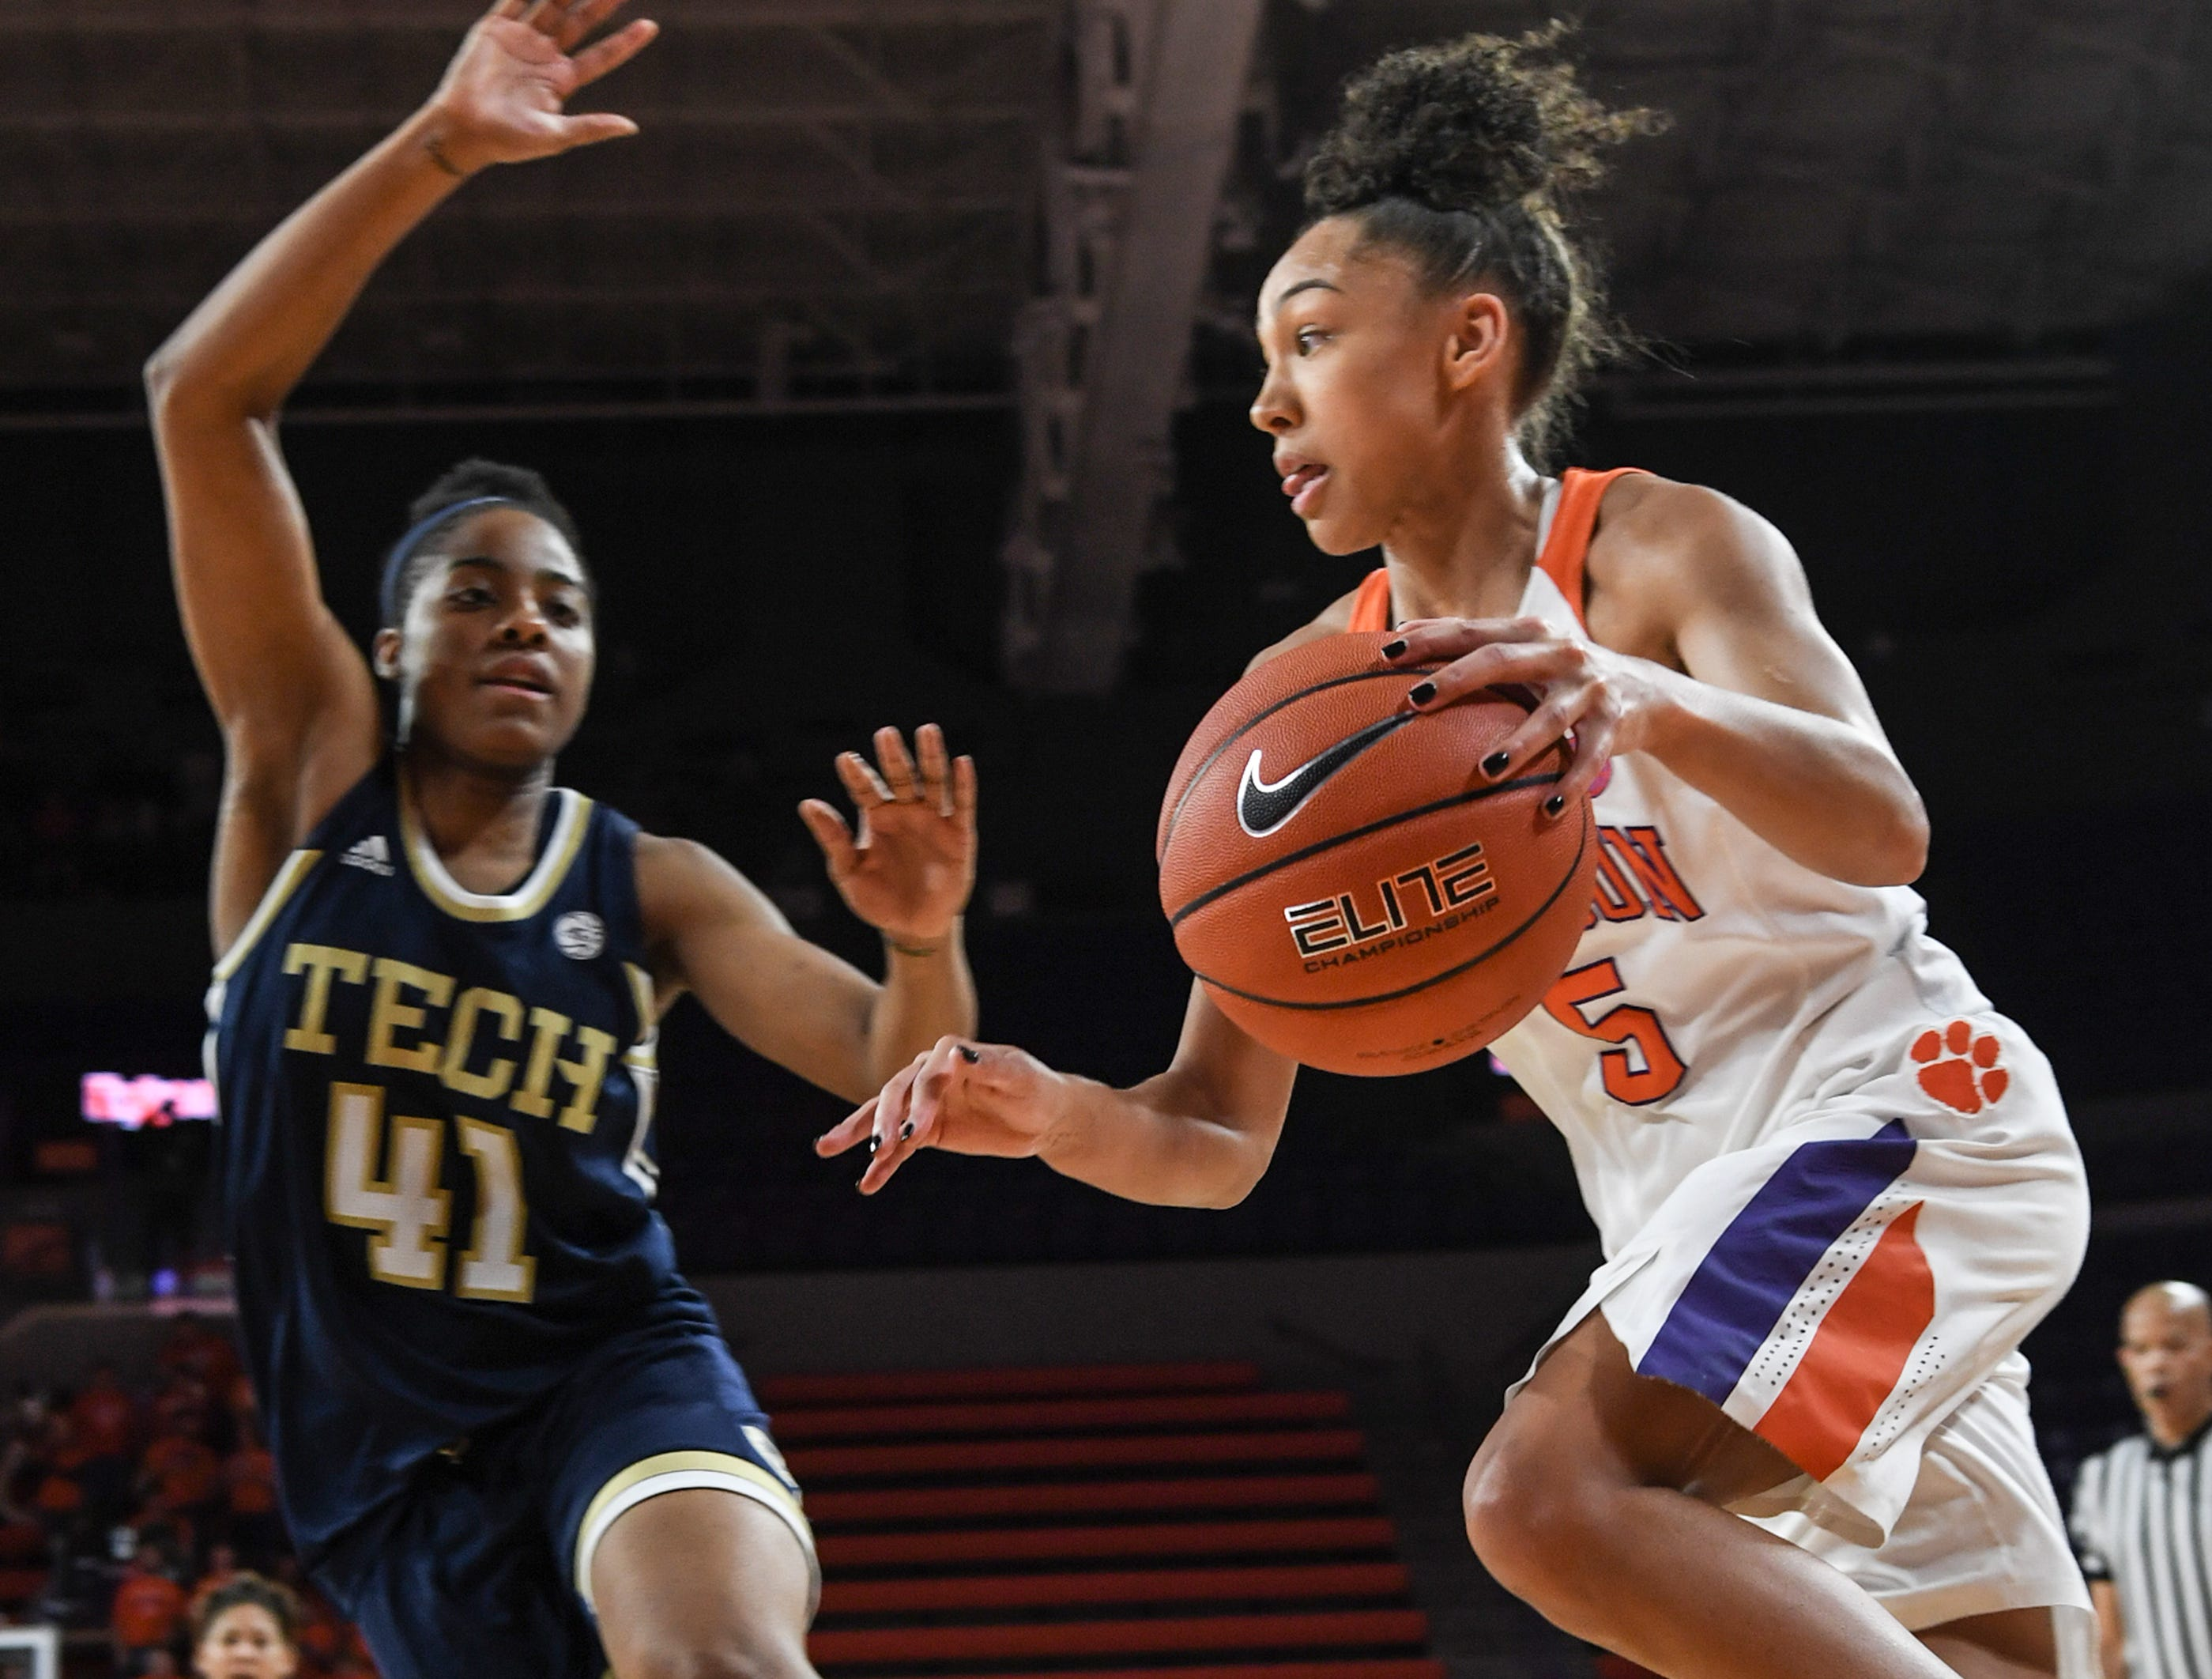 Clemson guard Danielle Edwards(5) dribbles near Georgia Tech guard Kierra Fletcher(41) during the fourth quarter at Littlejohn Coliseum in Clemson Thursday, January 17, 2019.